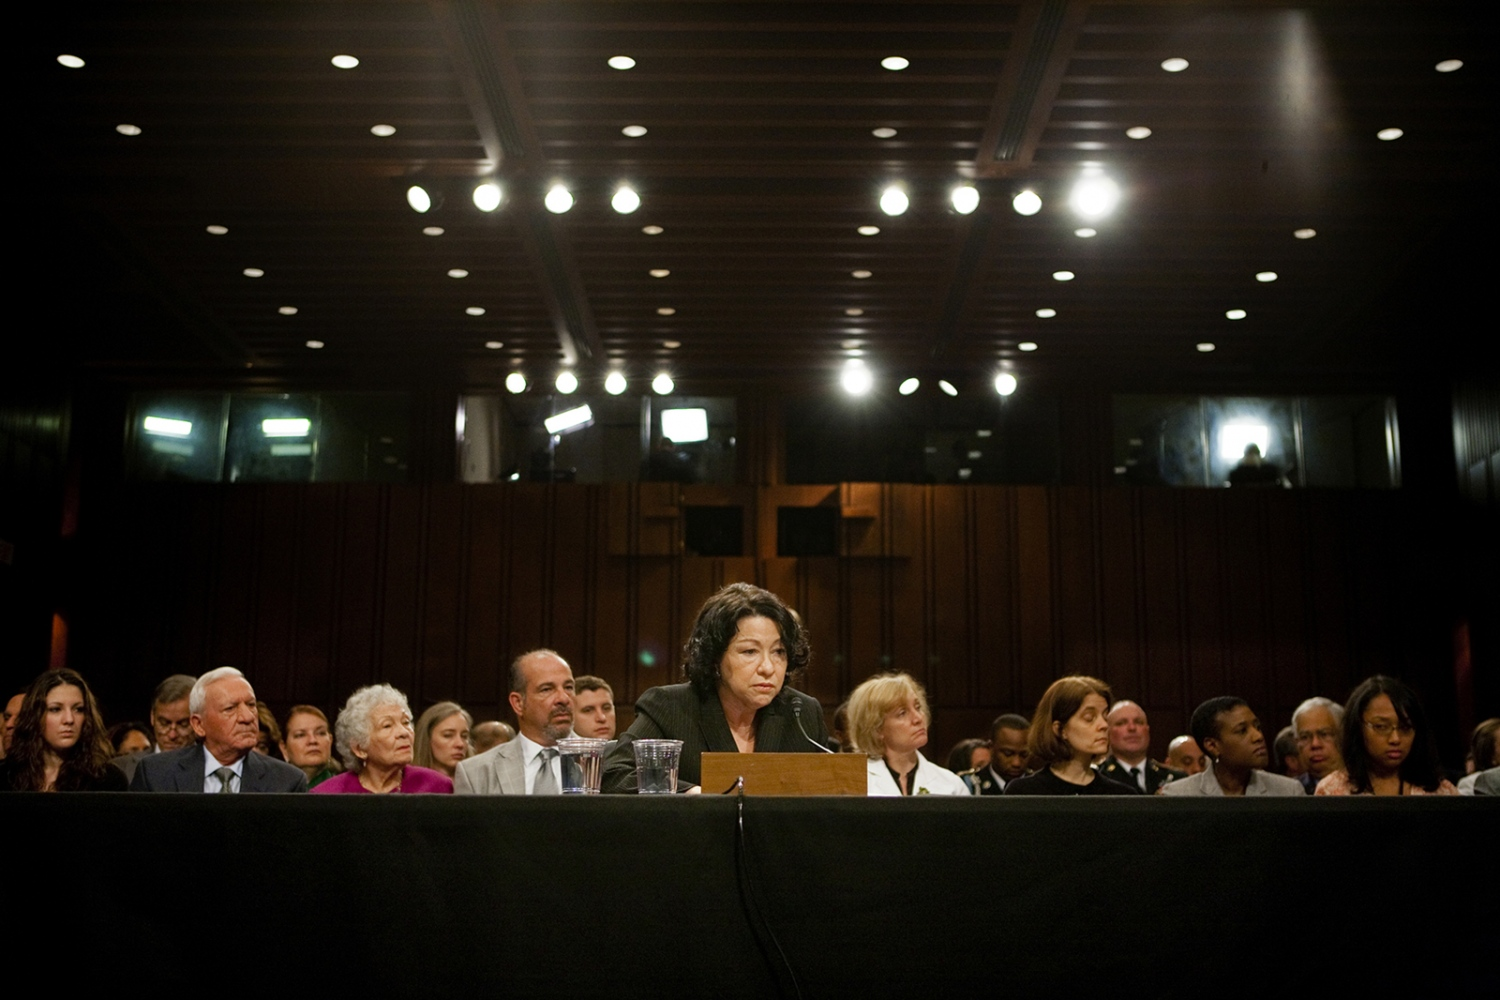 Sonia Sotomayor sits during her confirmation hearings to be Supreme Court justice.